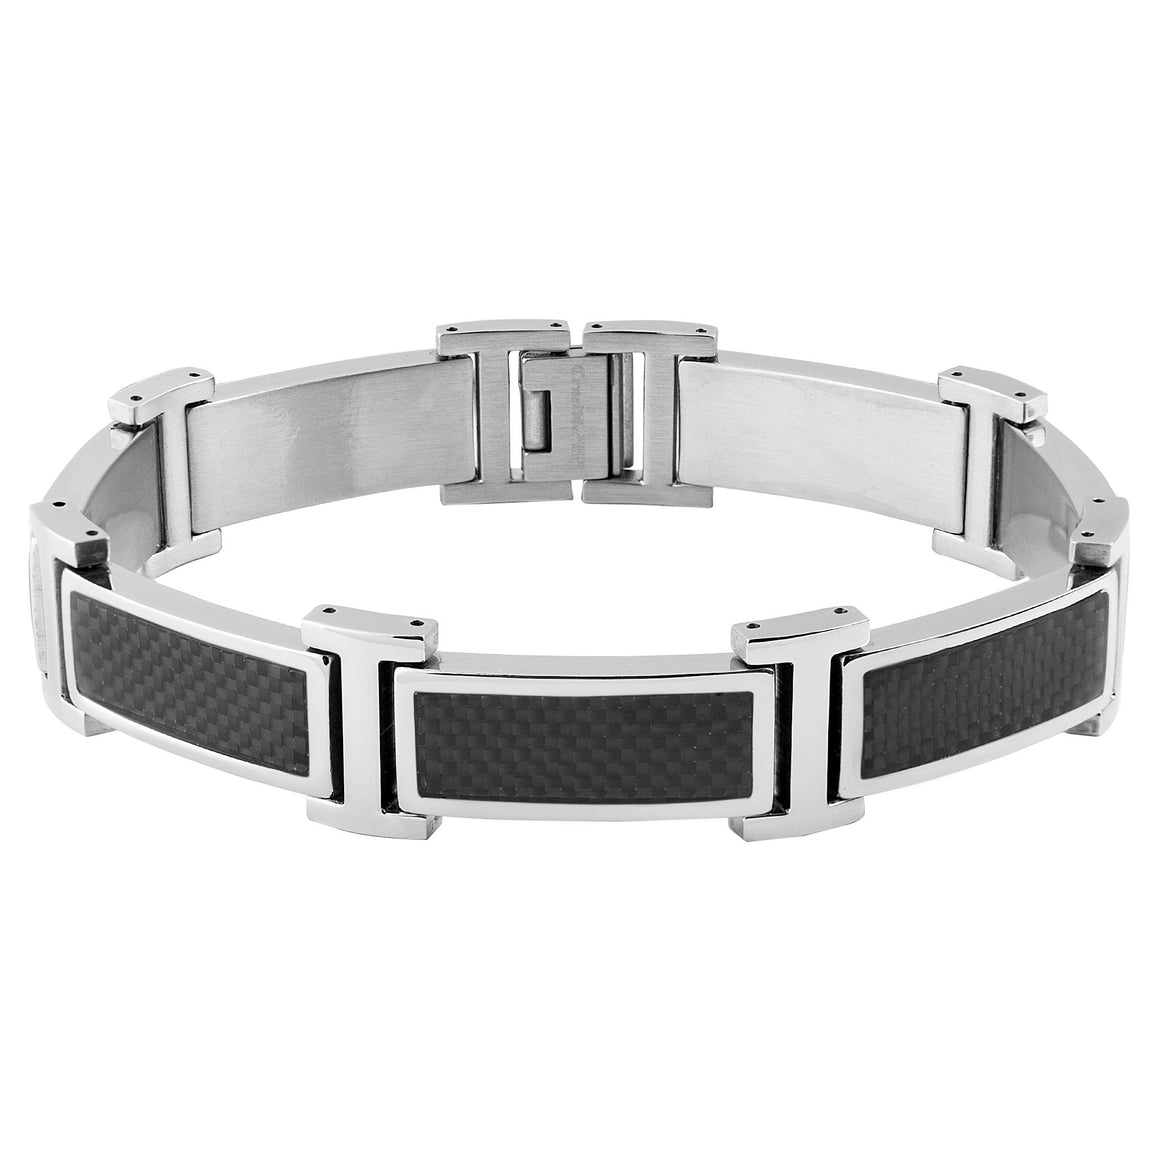 Crucible Stainless Steel Black Carbon Fiber Inlay Link Bracelet (17 mm) - 8.5""